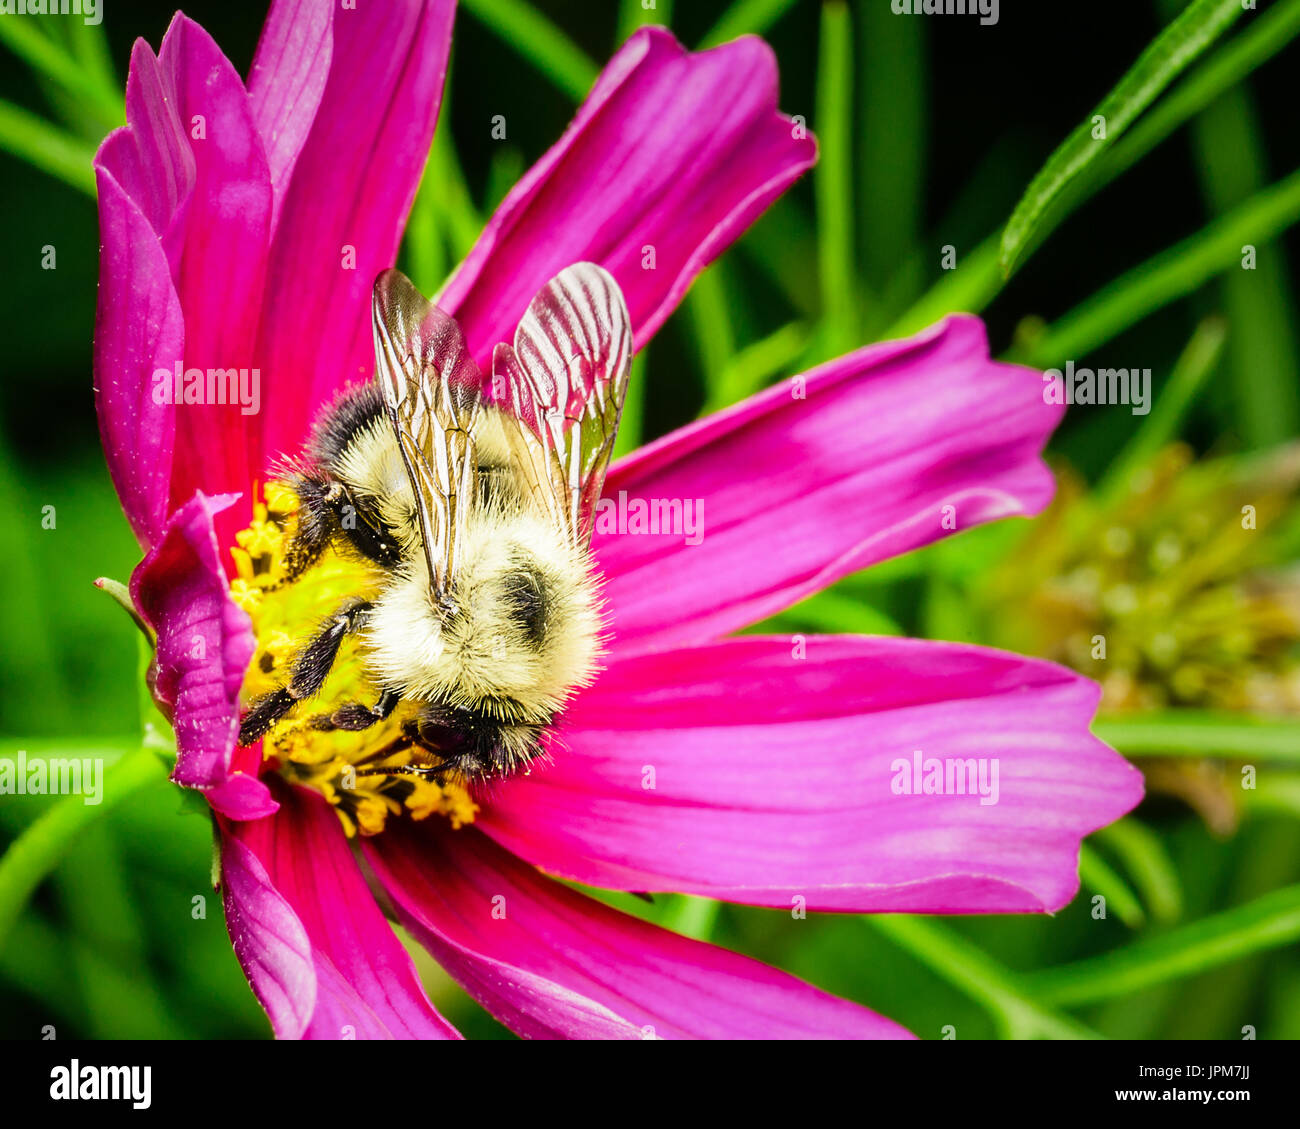 A yellow furry honey bee collecting nectar from the yellow bud of a purple flower in my backyard garden.   The bee Stock Photo